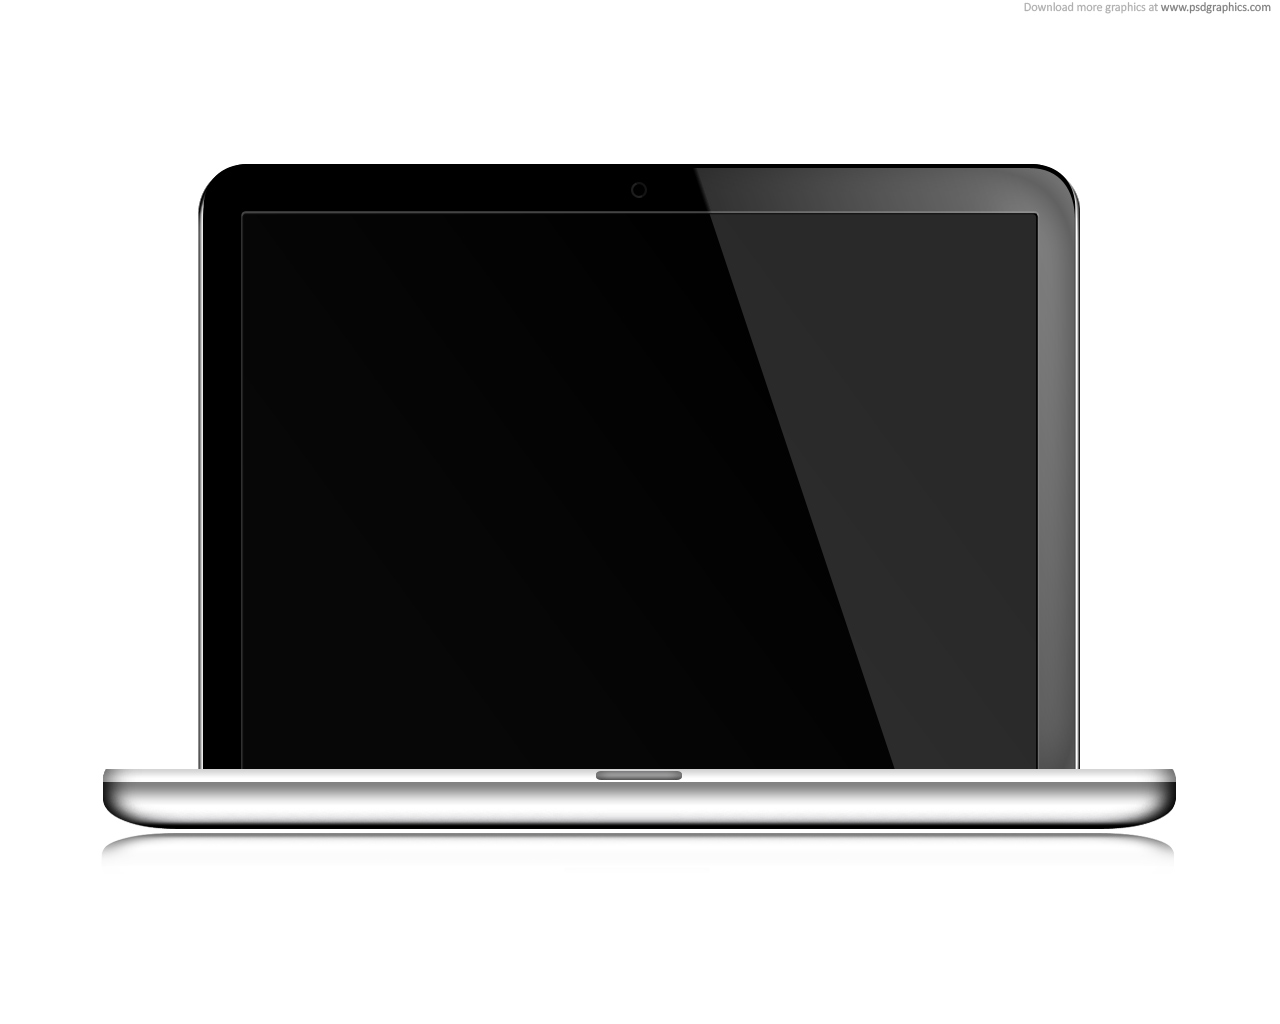 1280x1024 Free Laptop Clipart Black And White Image